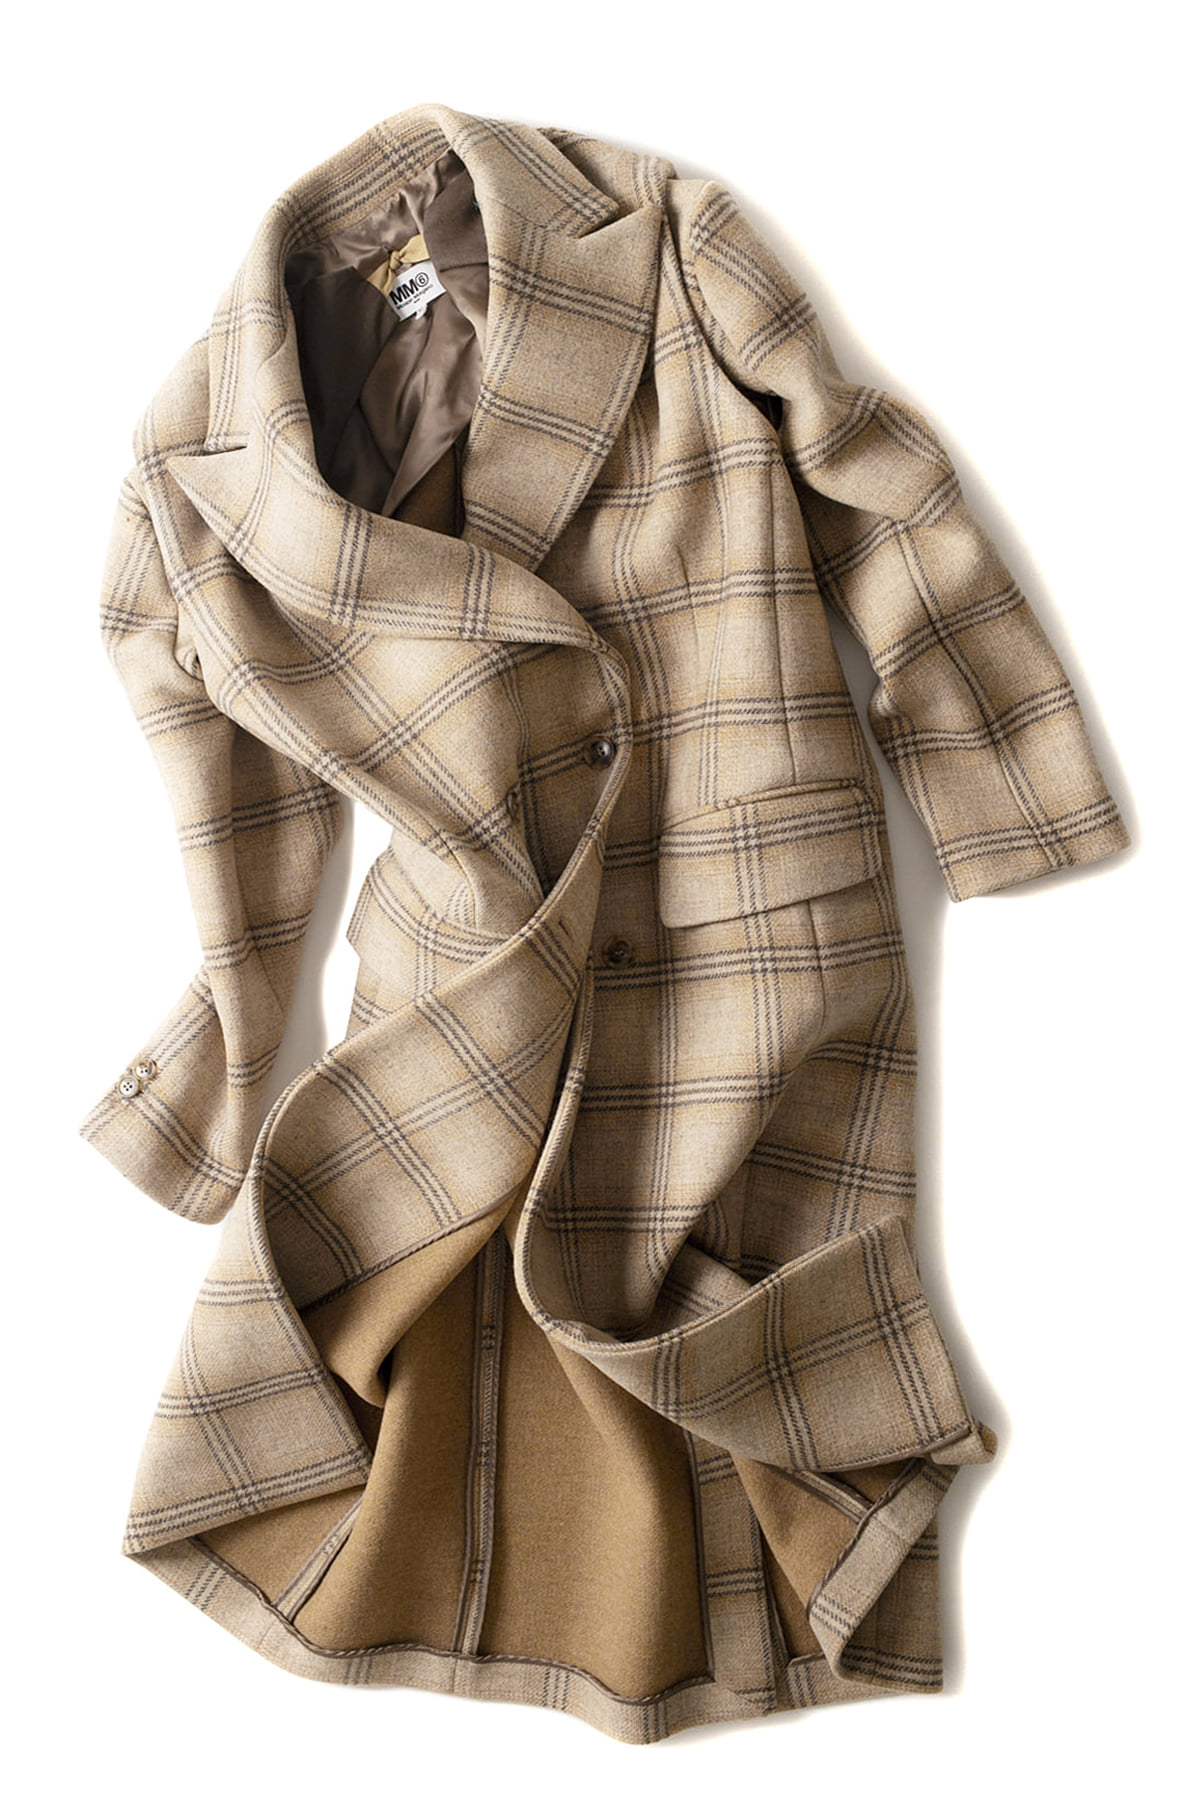 MM6 Maison Margiela : Detachable Sleeve Checked Wool Coat for Women (Check)